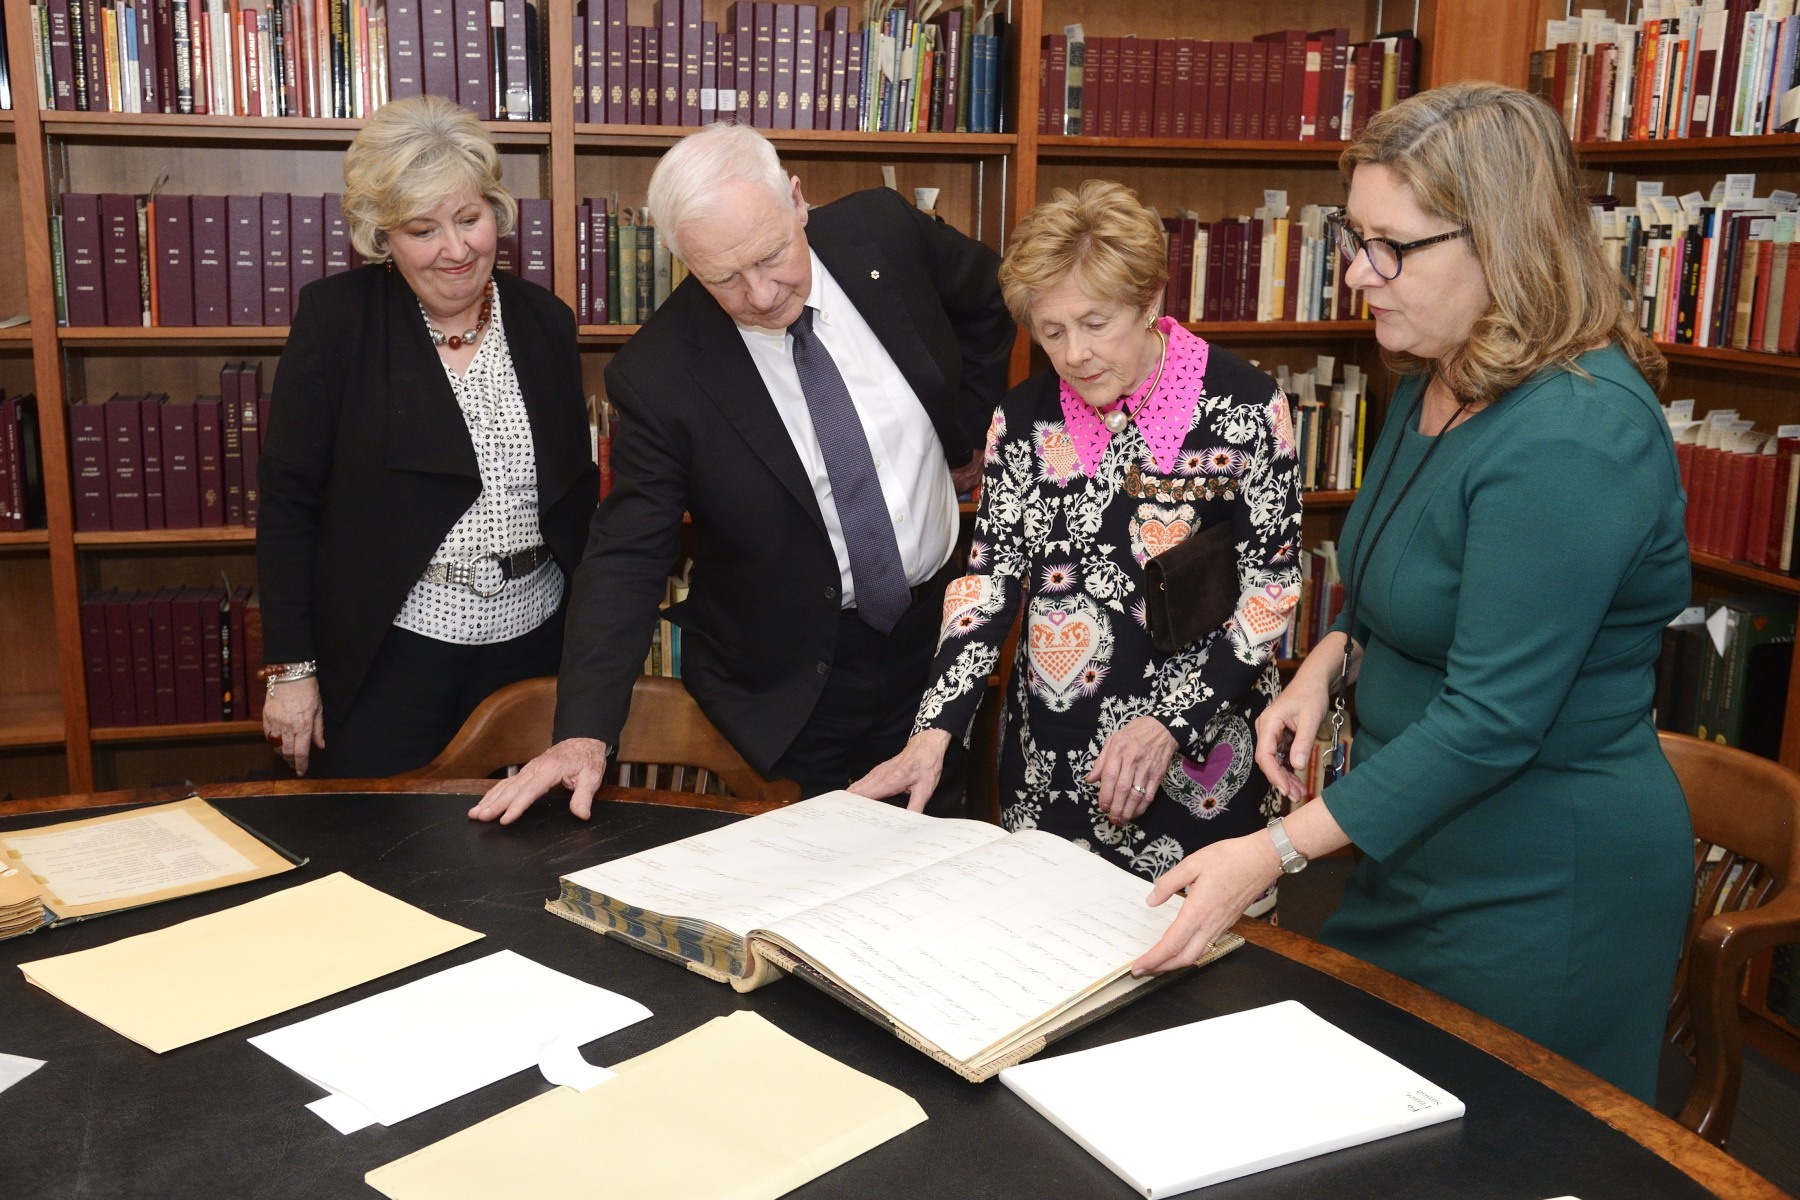 Before the evening book launch, Their Excellencies were joined by Toronto City Librarian Ms. Vickery Bowles, who showed them a few examples of their rare books collection.